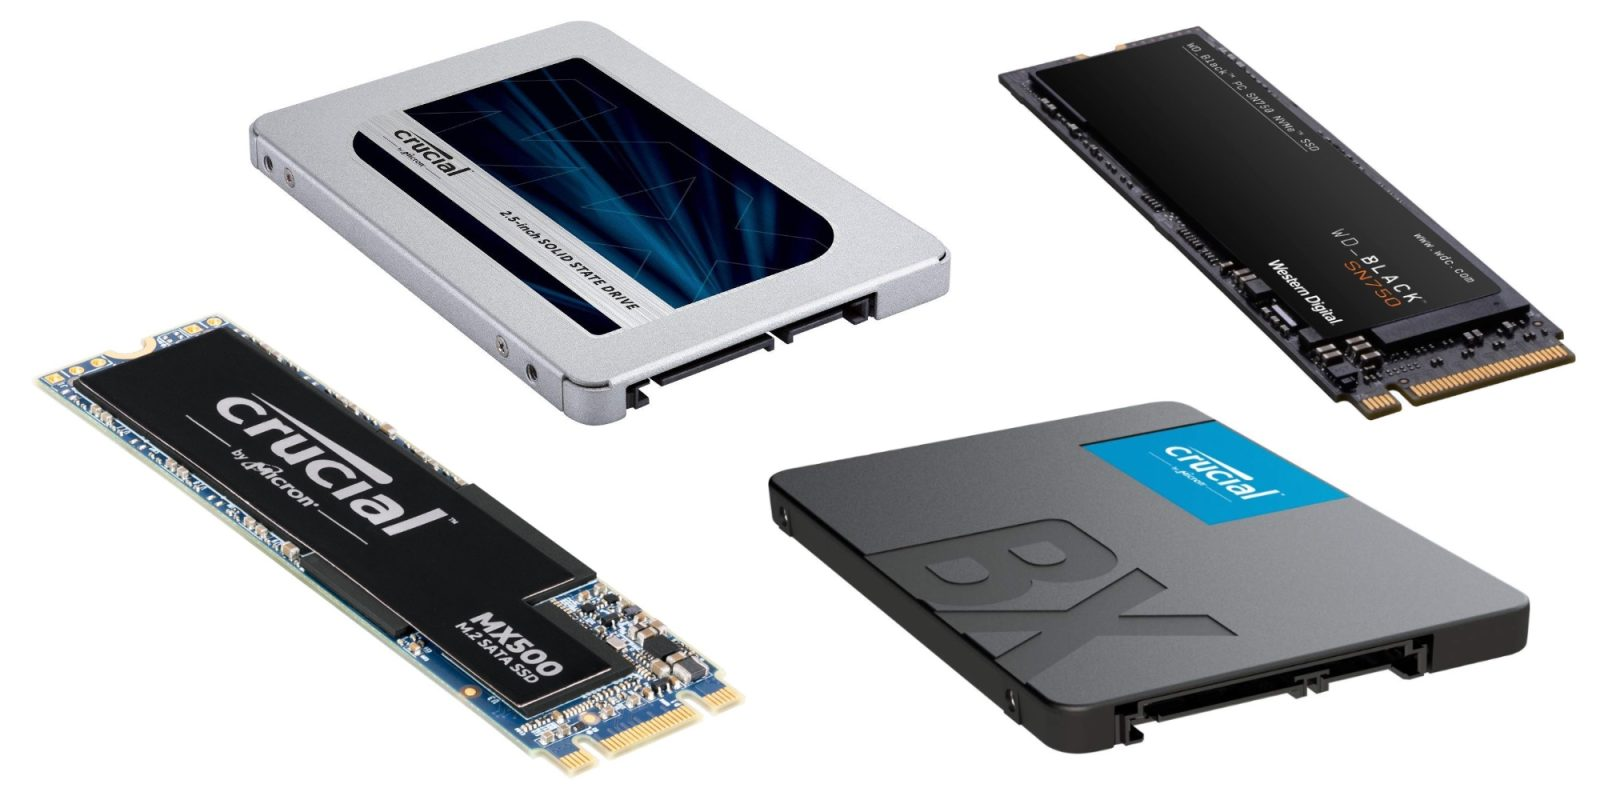 Best SSD deals: Crucial 250GB $40, WD Blue 2TB $220, more - 9to5Toys